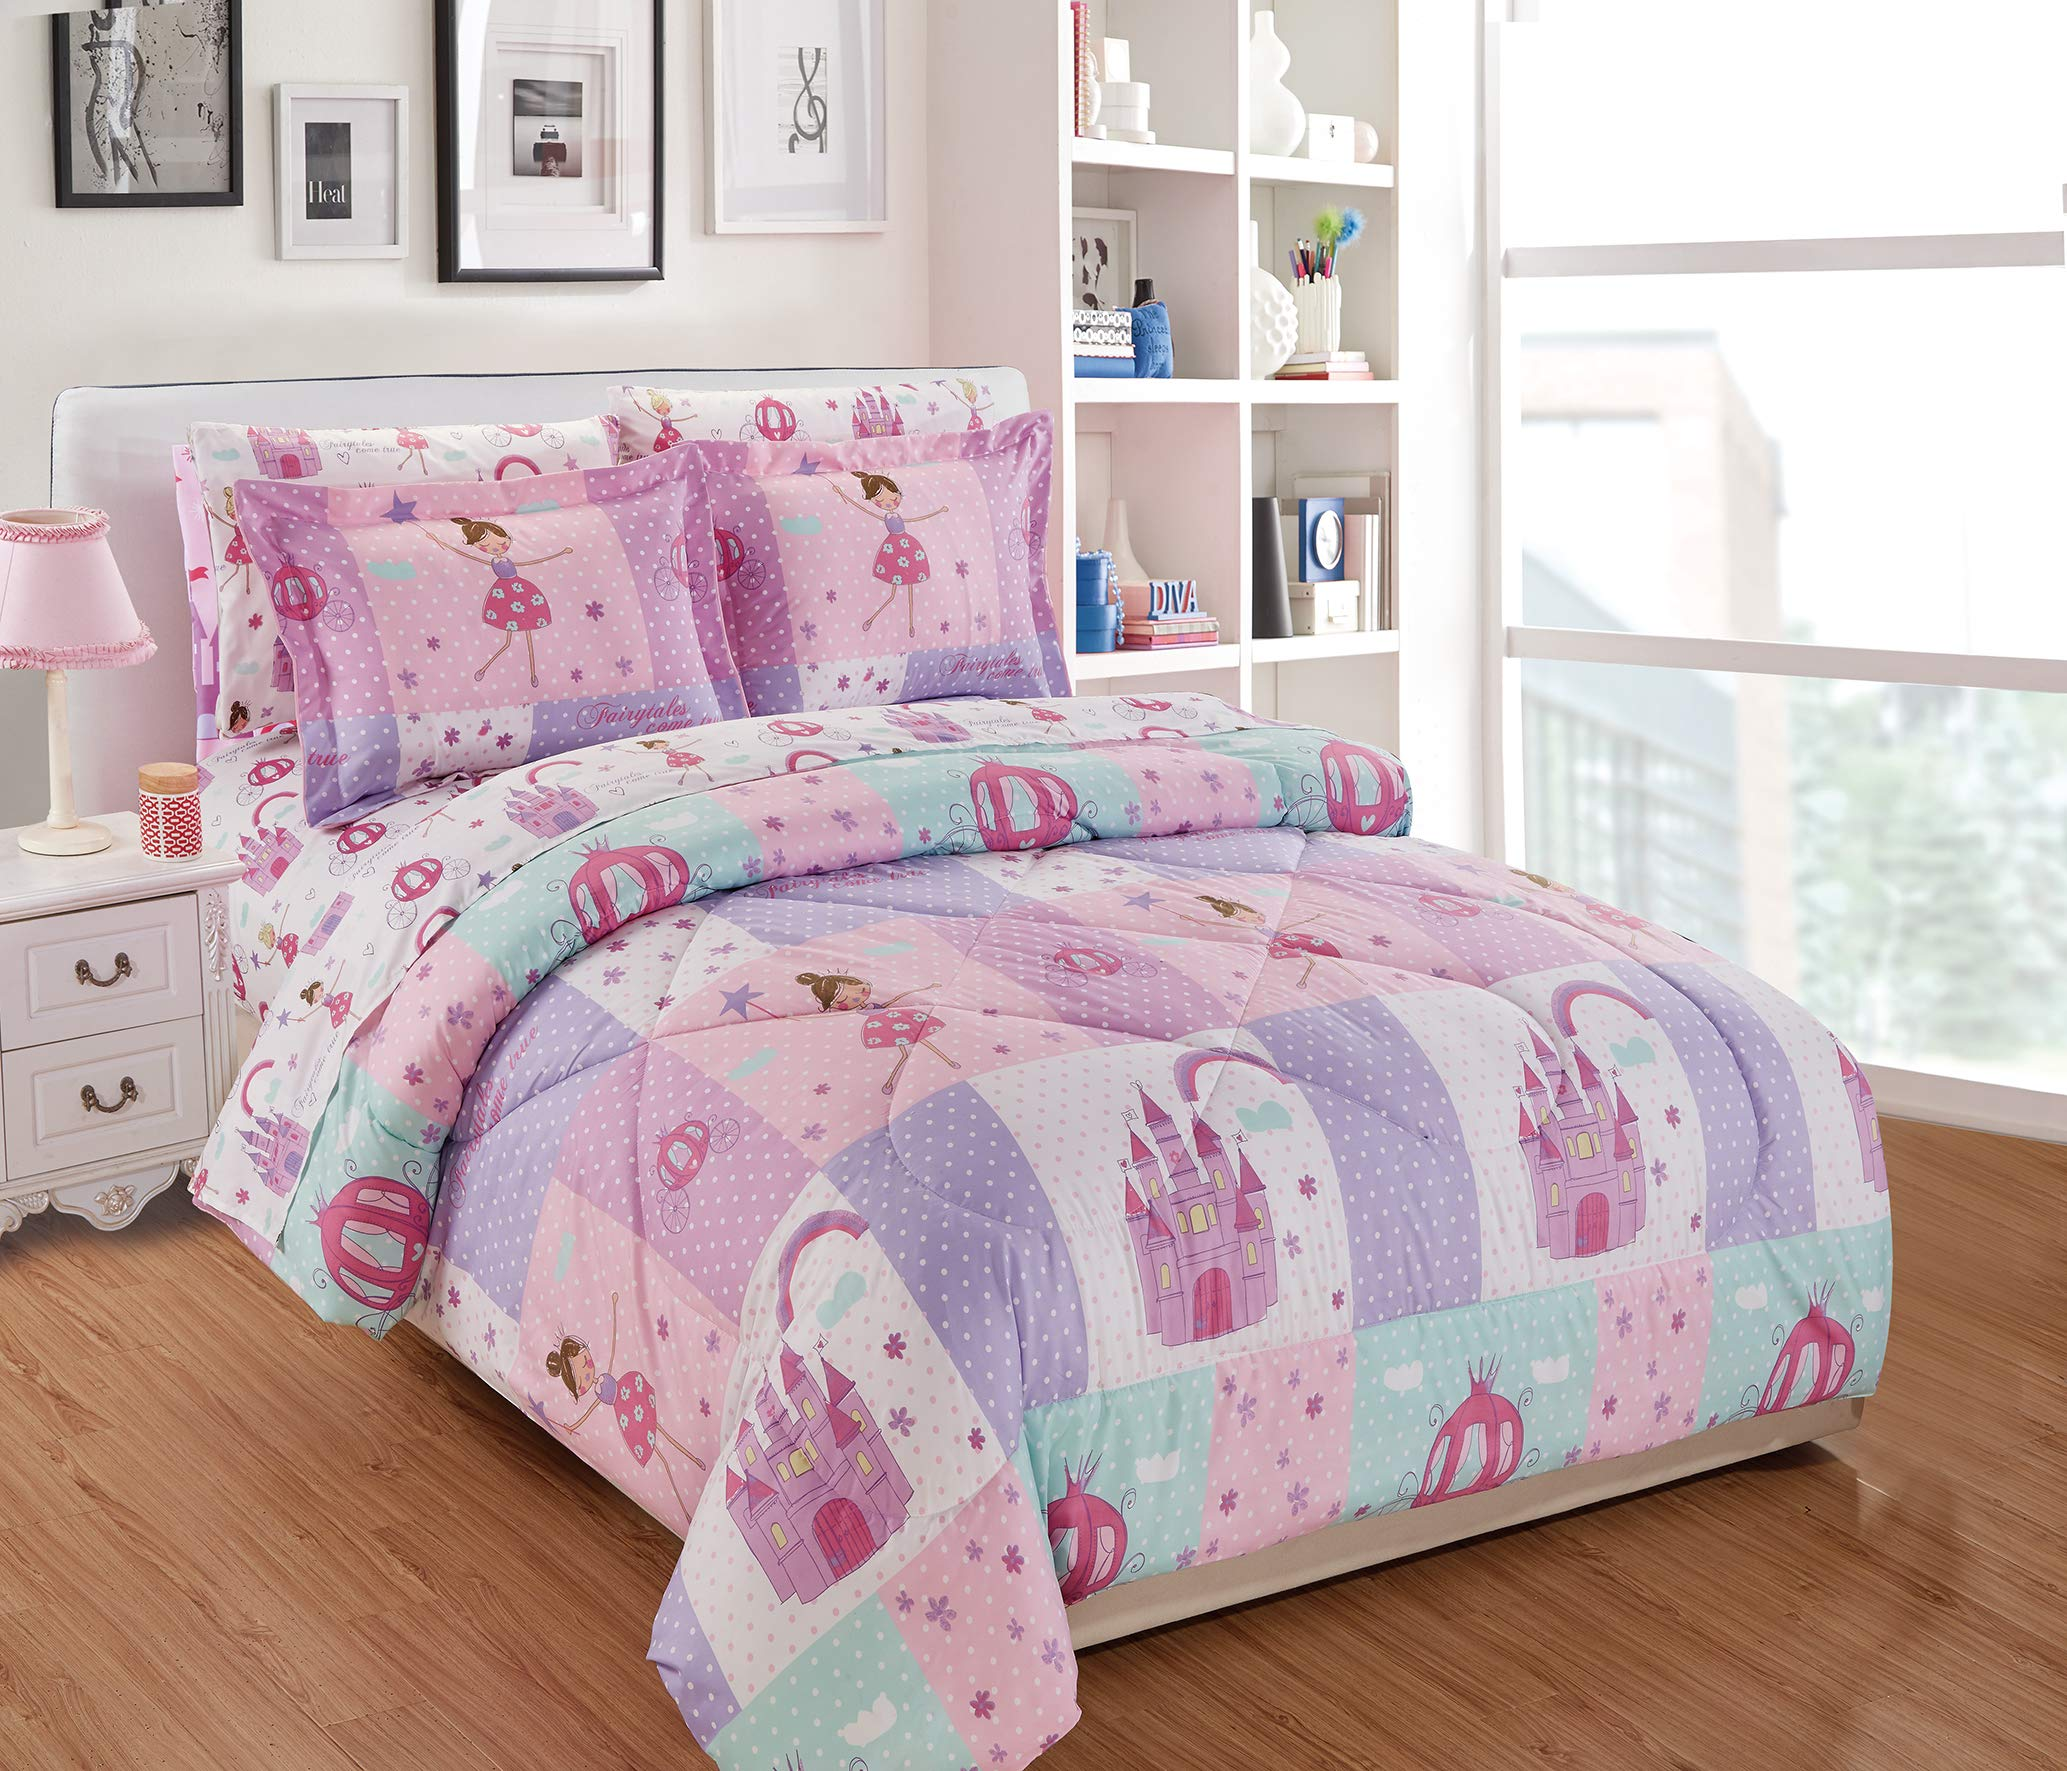 Luxury Home Collection 5 Piece Kids Comforter Set Fairy Castle Clouds Pink(Twin Comforter)